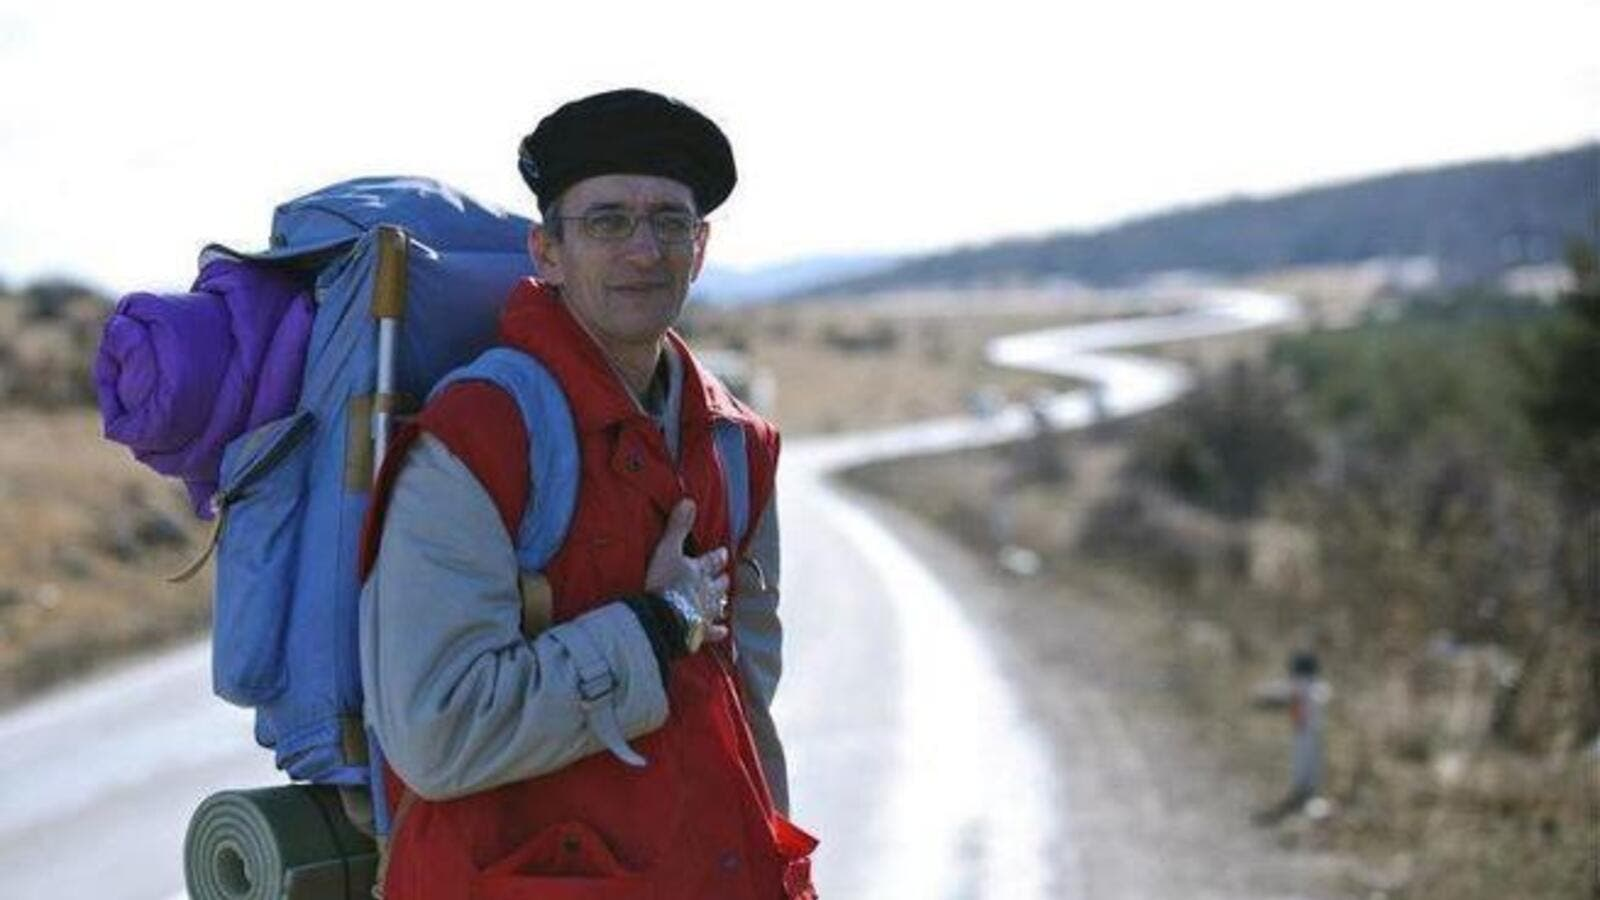 Senad Hadzic did the 6000 kilometer journey between Banovici and Mecca on foot